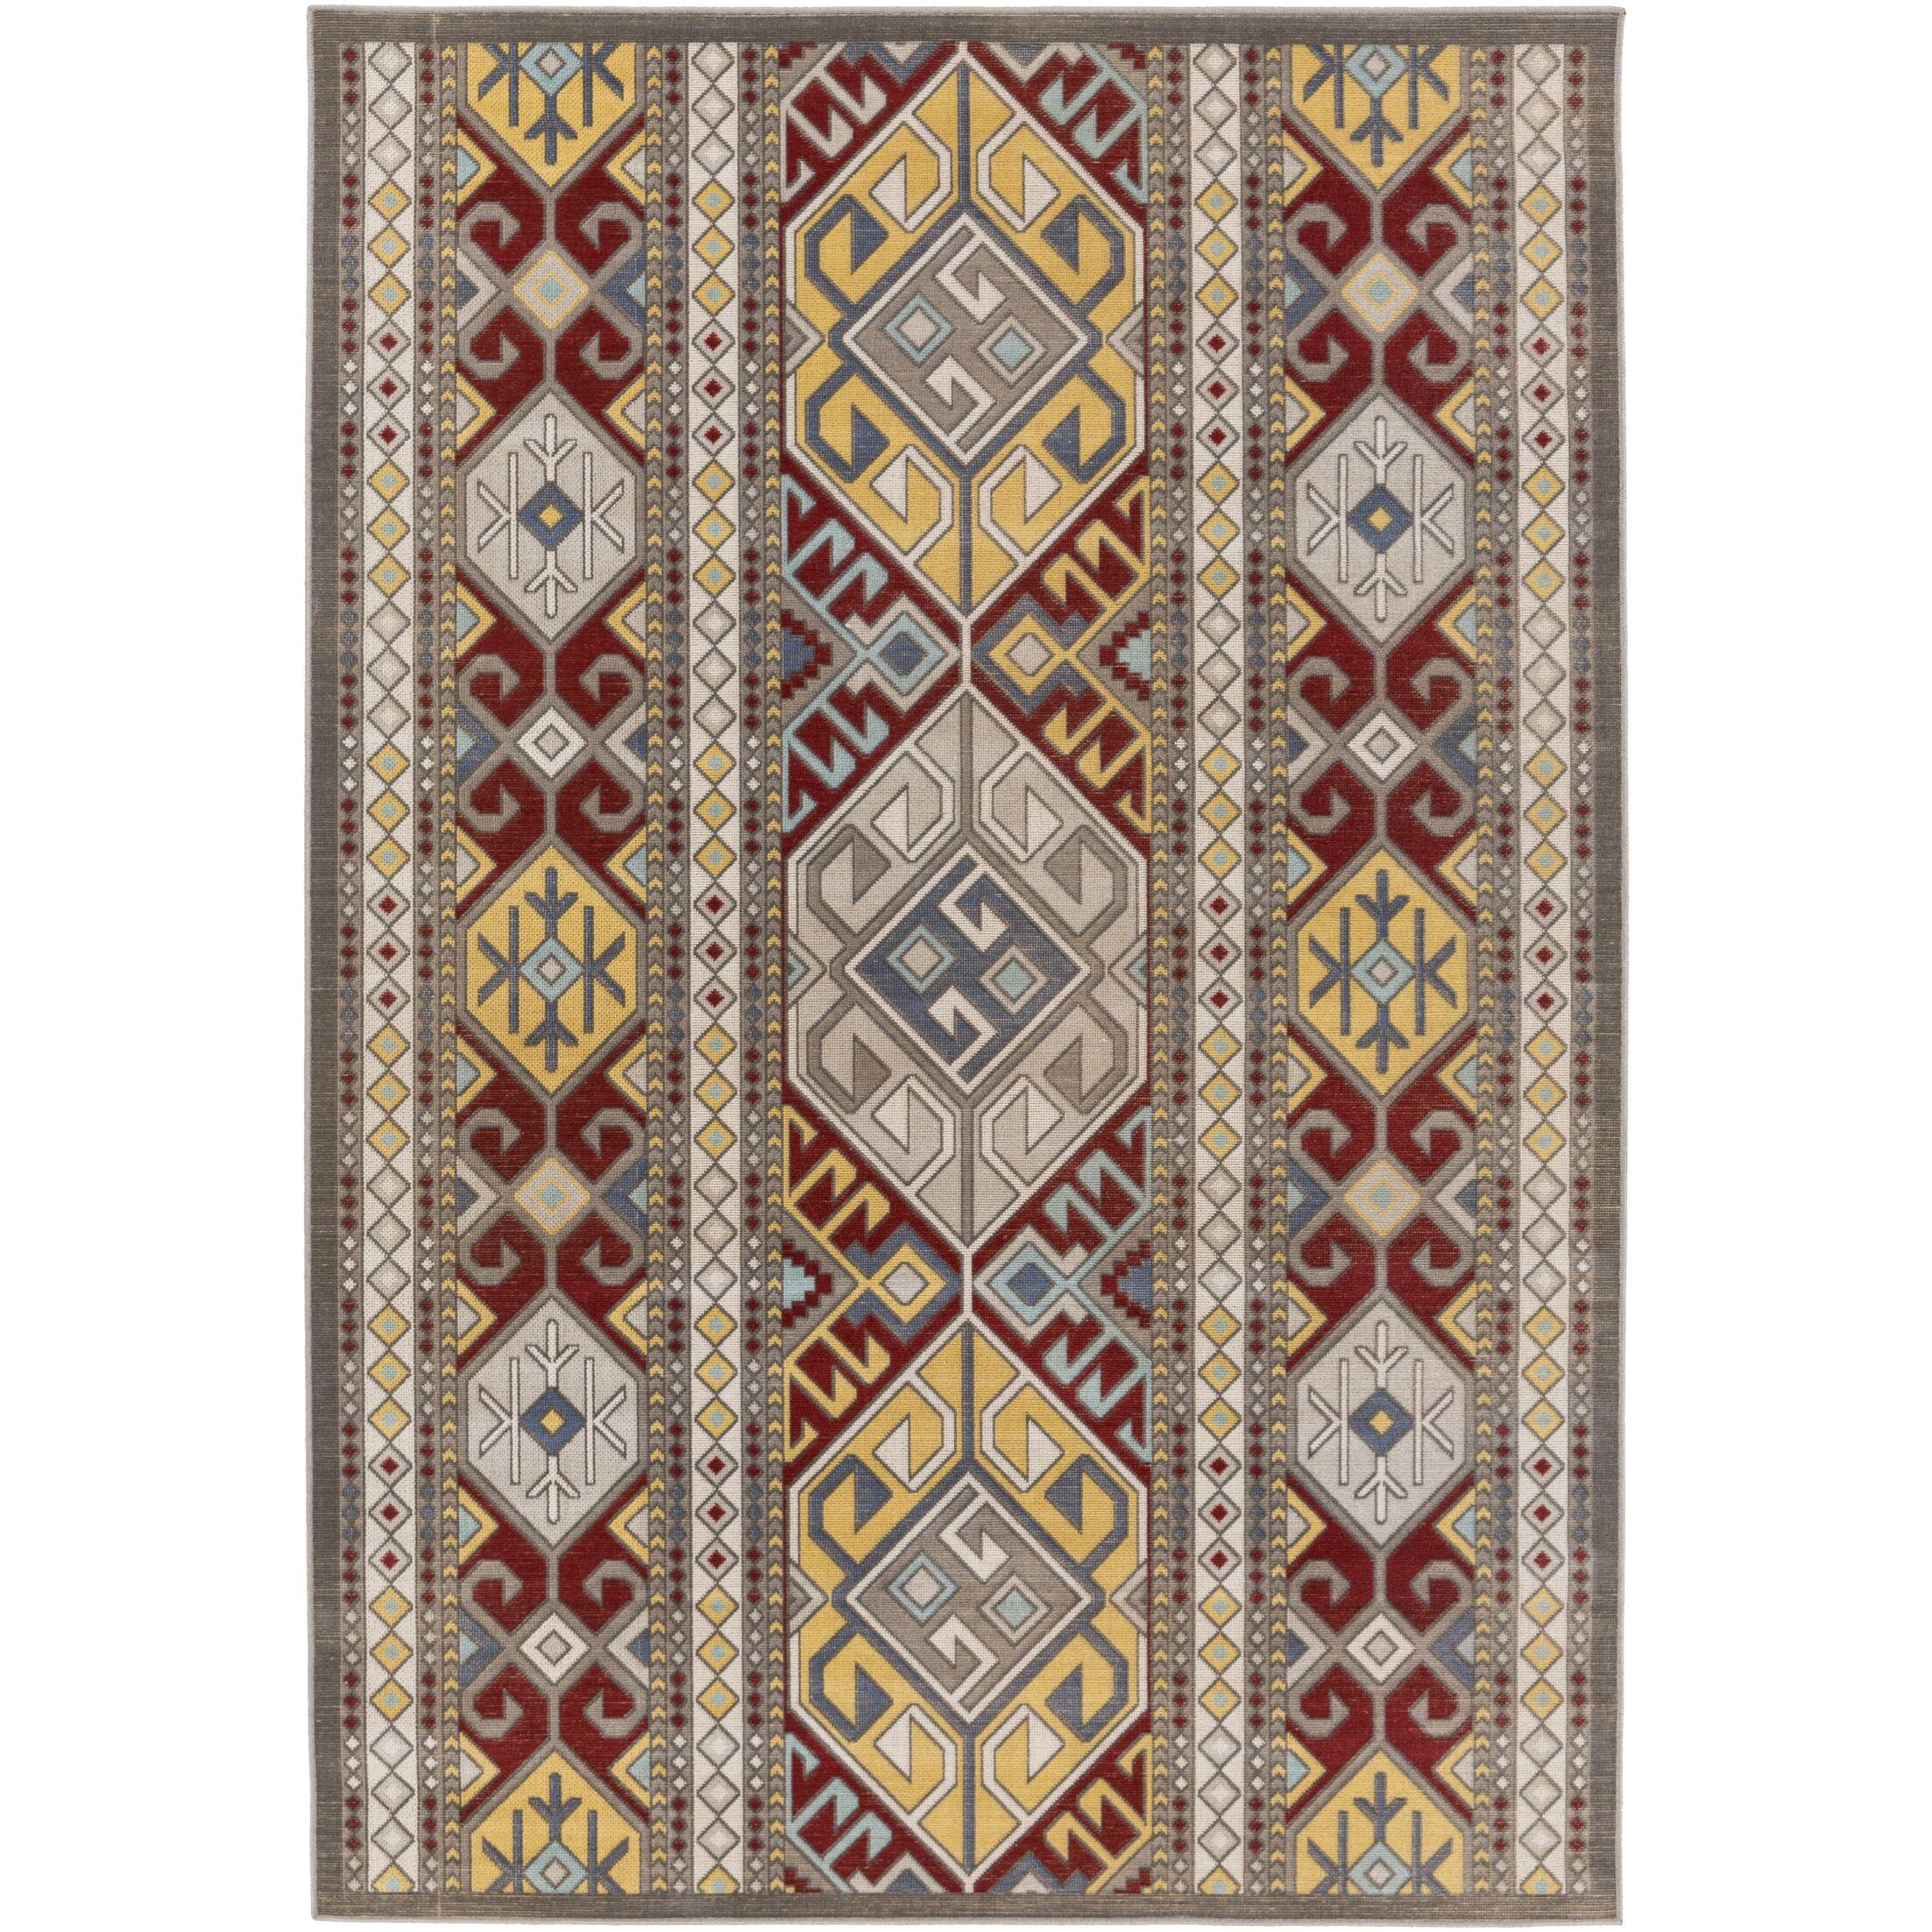 Septfontaines Gold/Burgundy Area Rug Rug Size: Rectangle 7'11